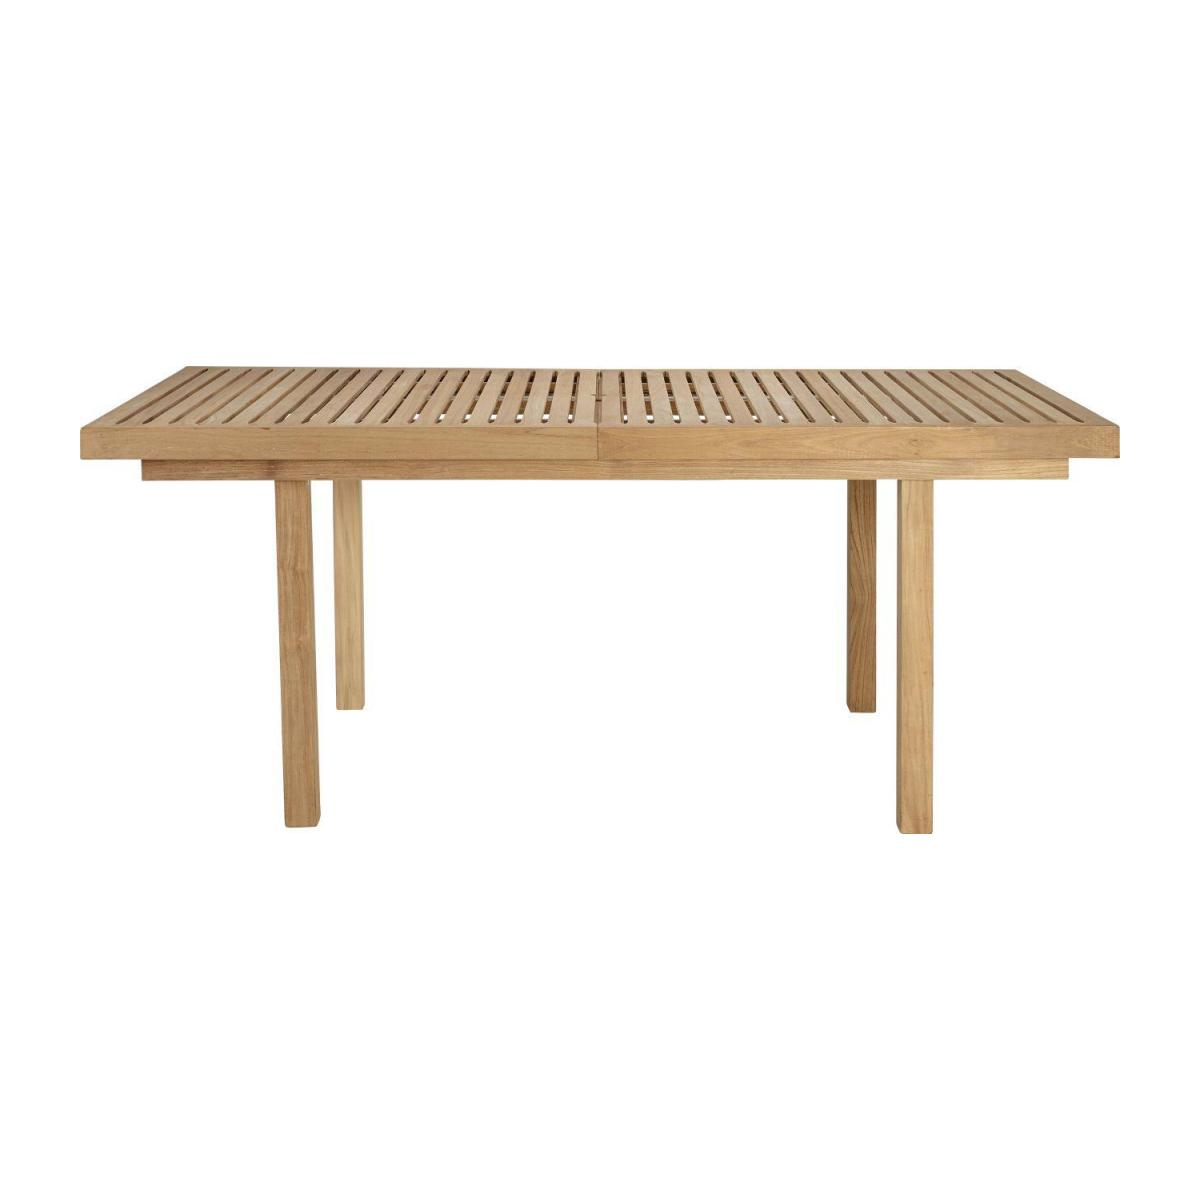 Table de jardin à rallonges en teck - Naturel - 252 x 100 cm